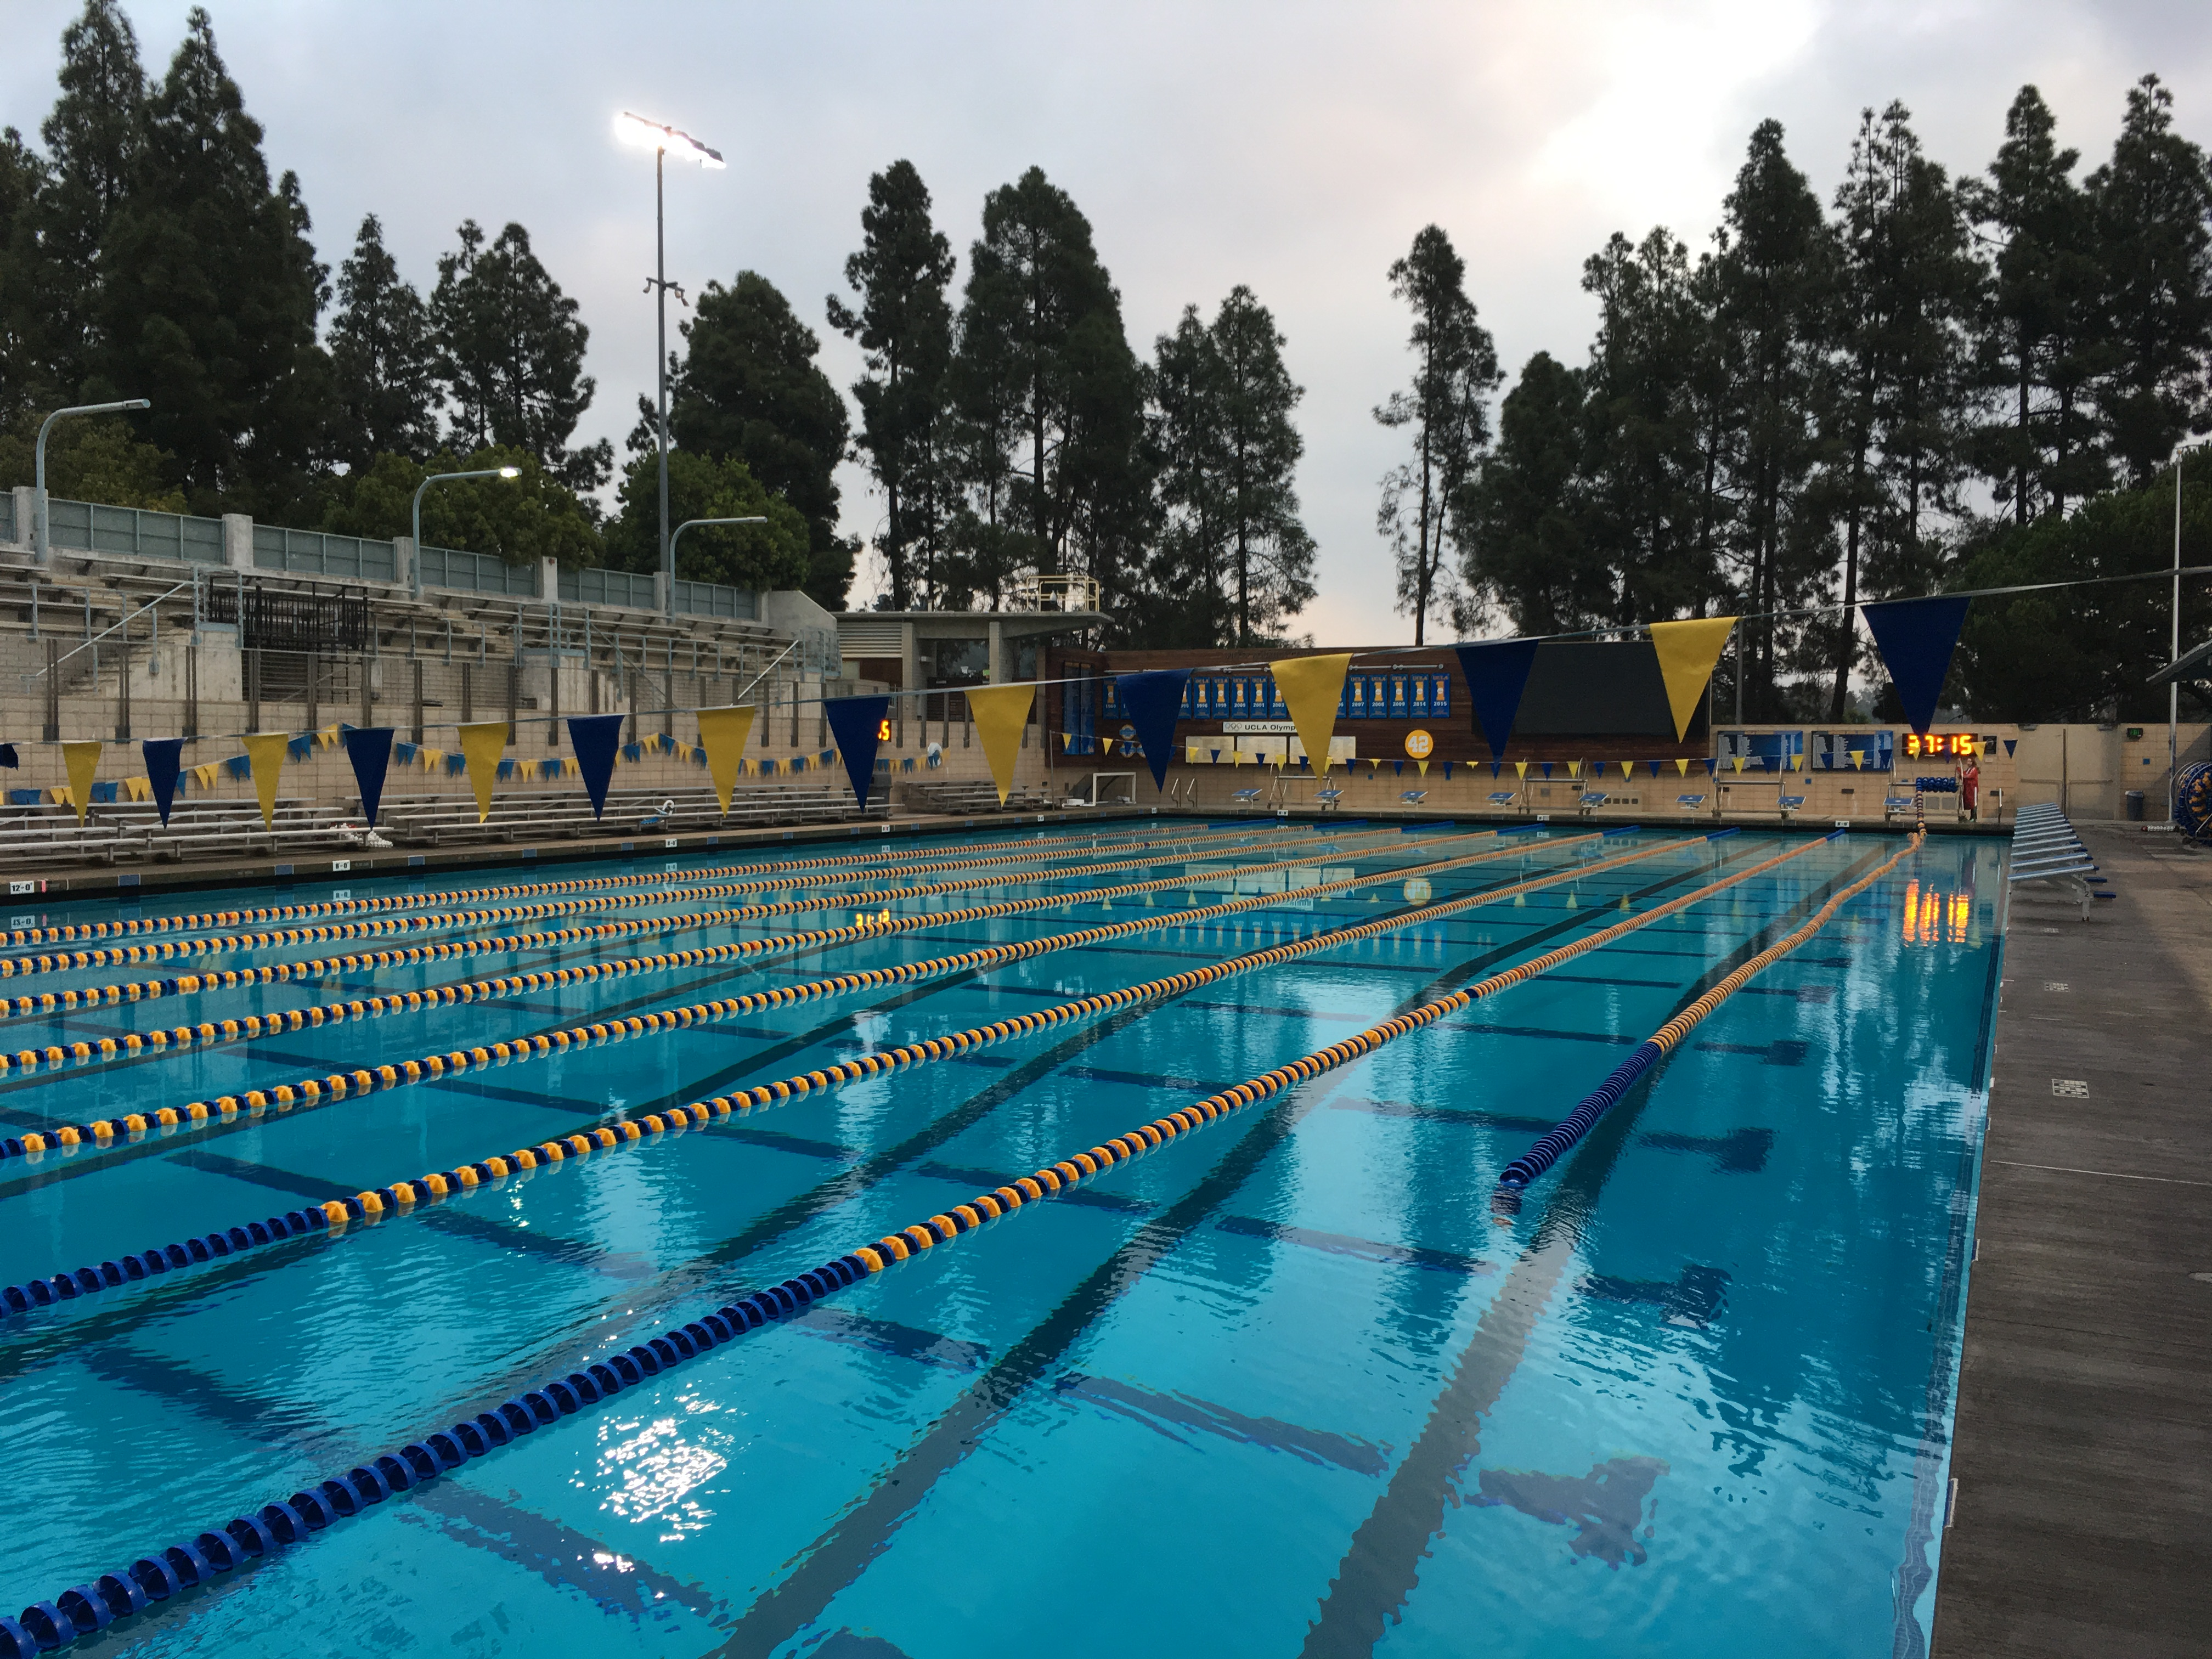 0320 - UCLA Dirks - Spieker Aquatic Center